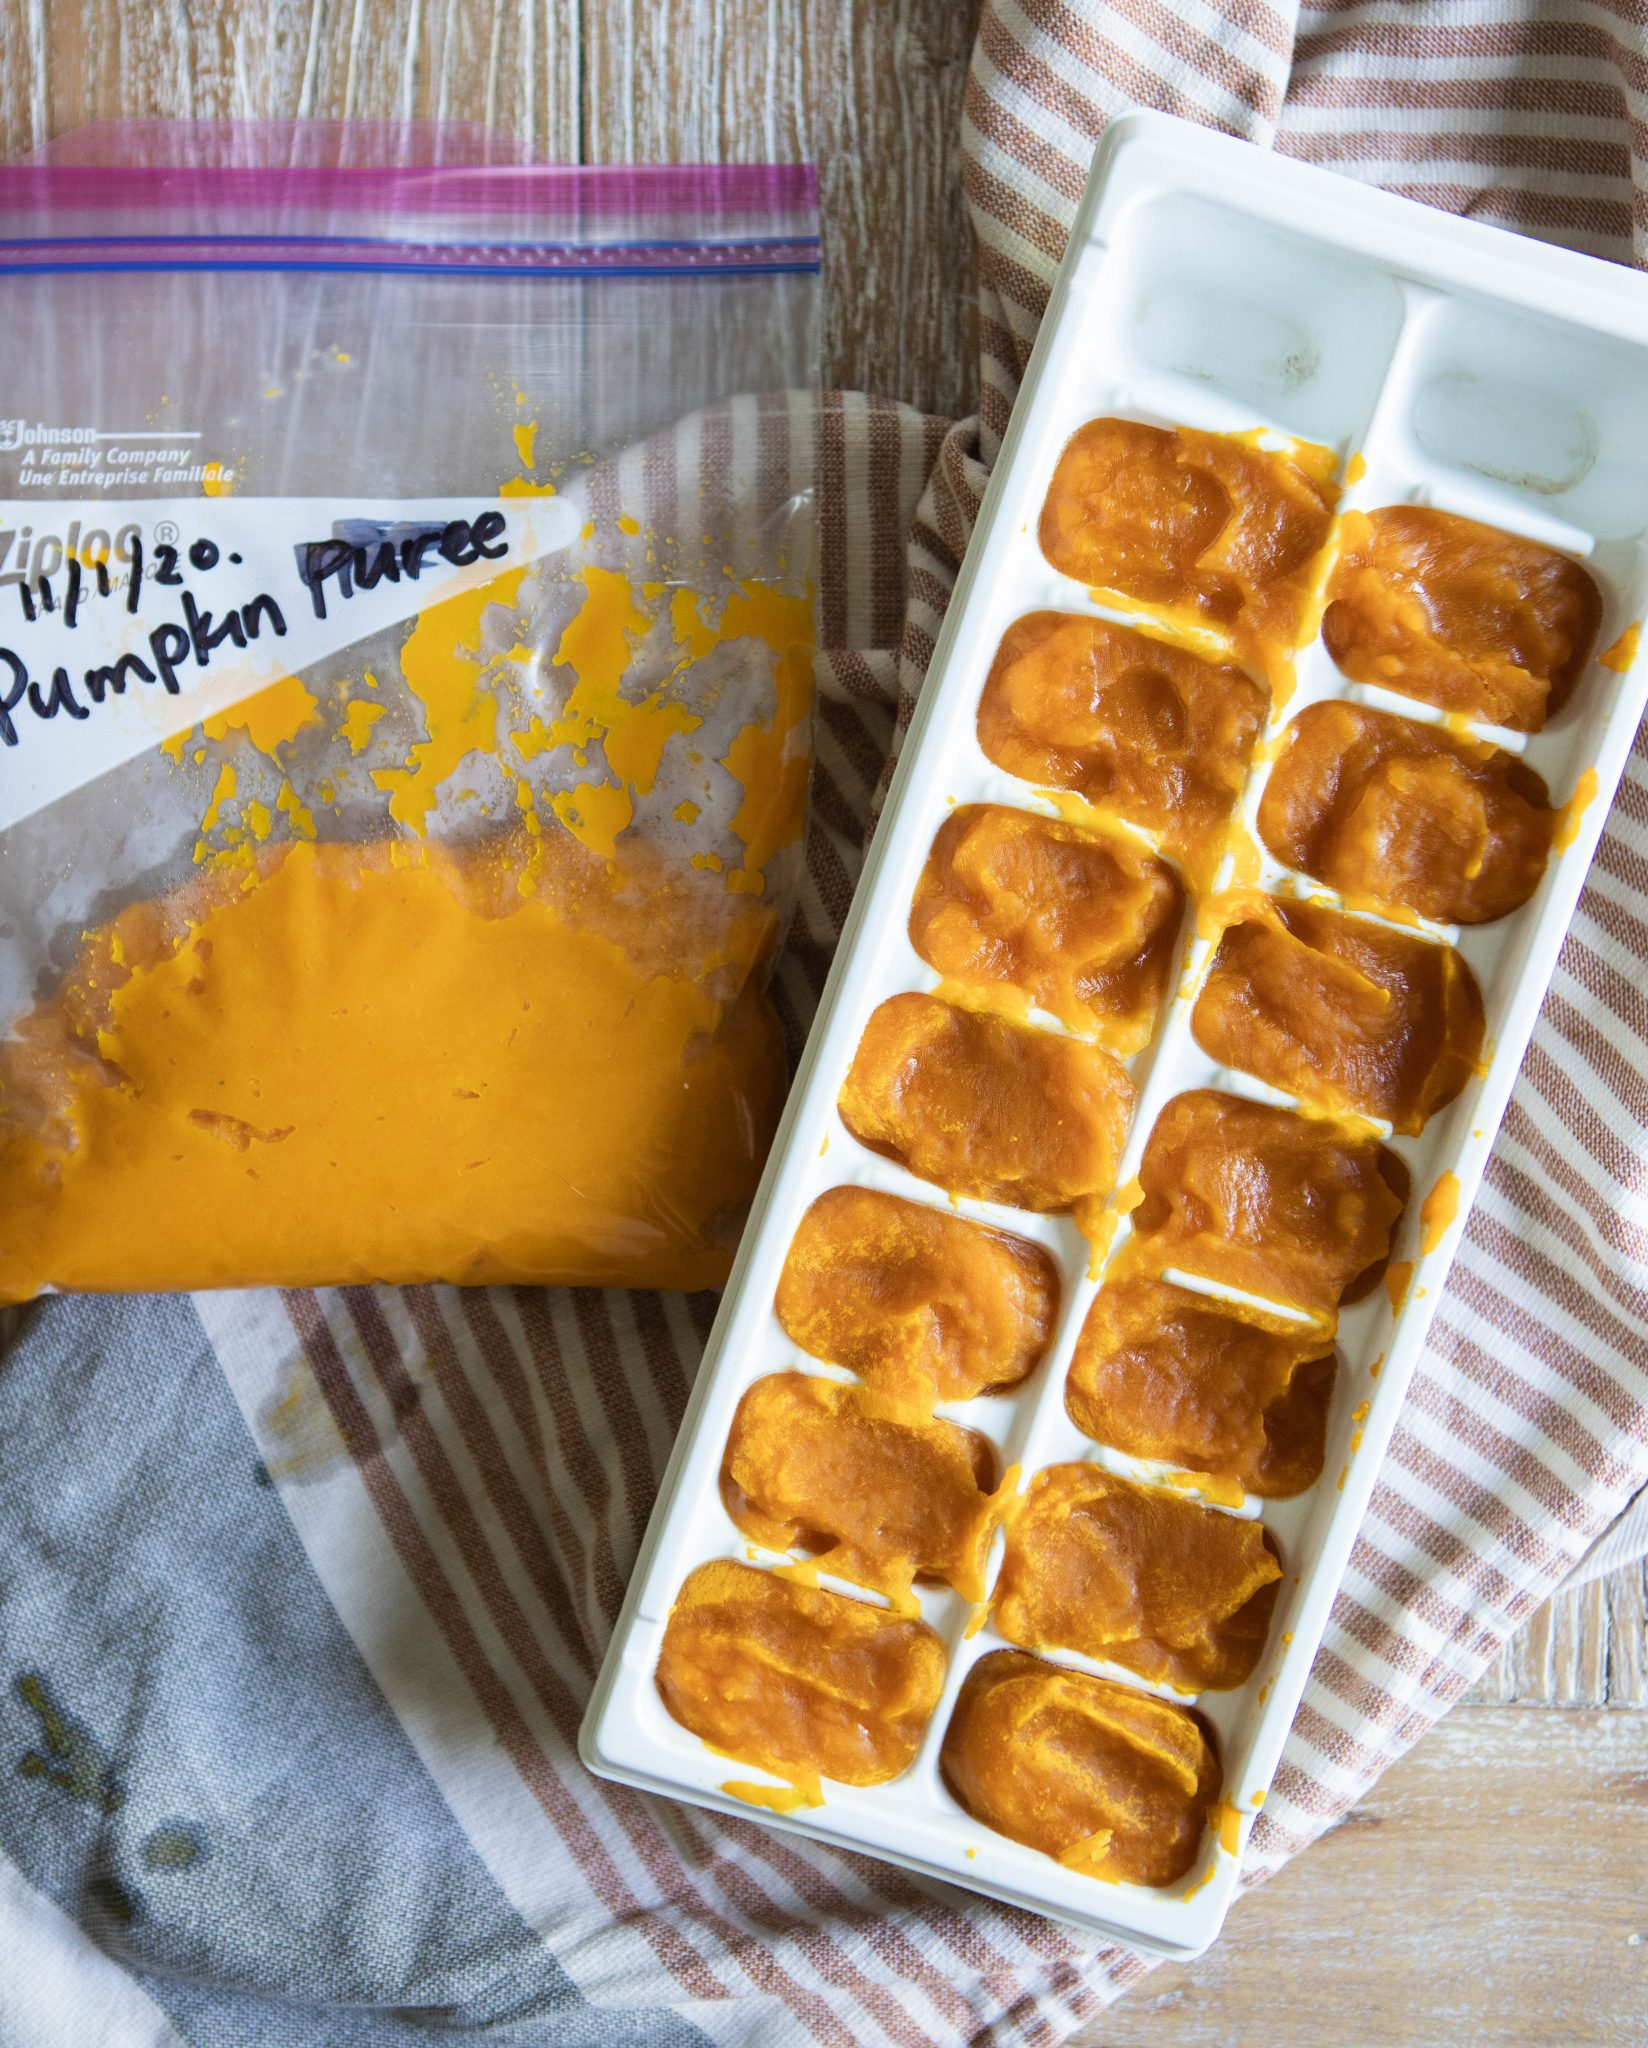 pumpkin puree spooned into ice cube trays and in freezer bag